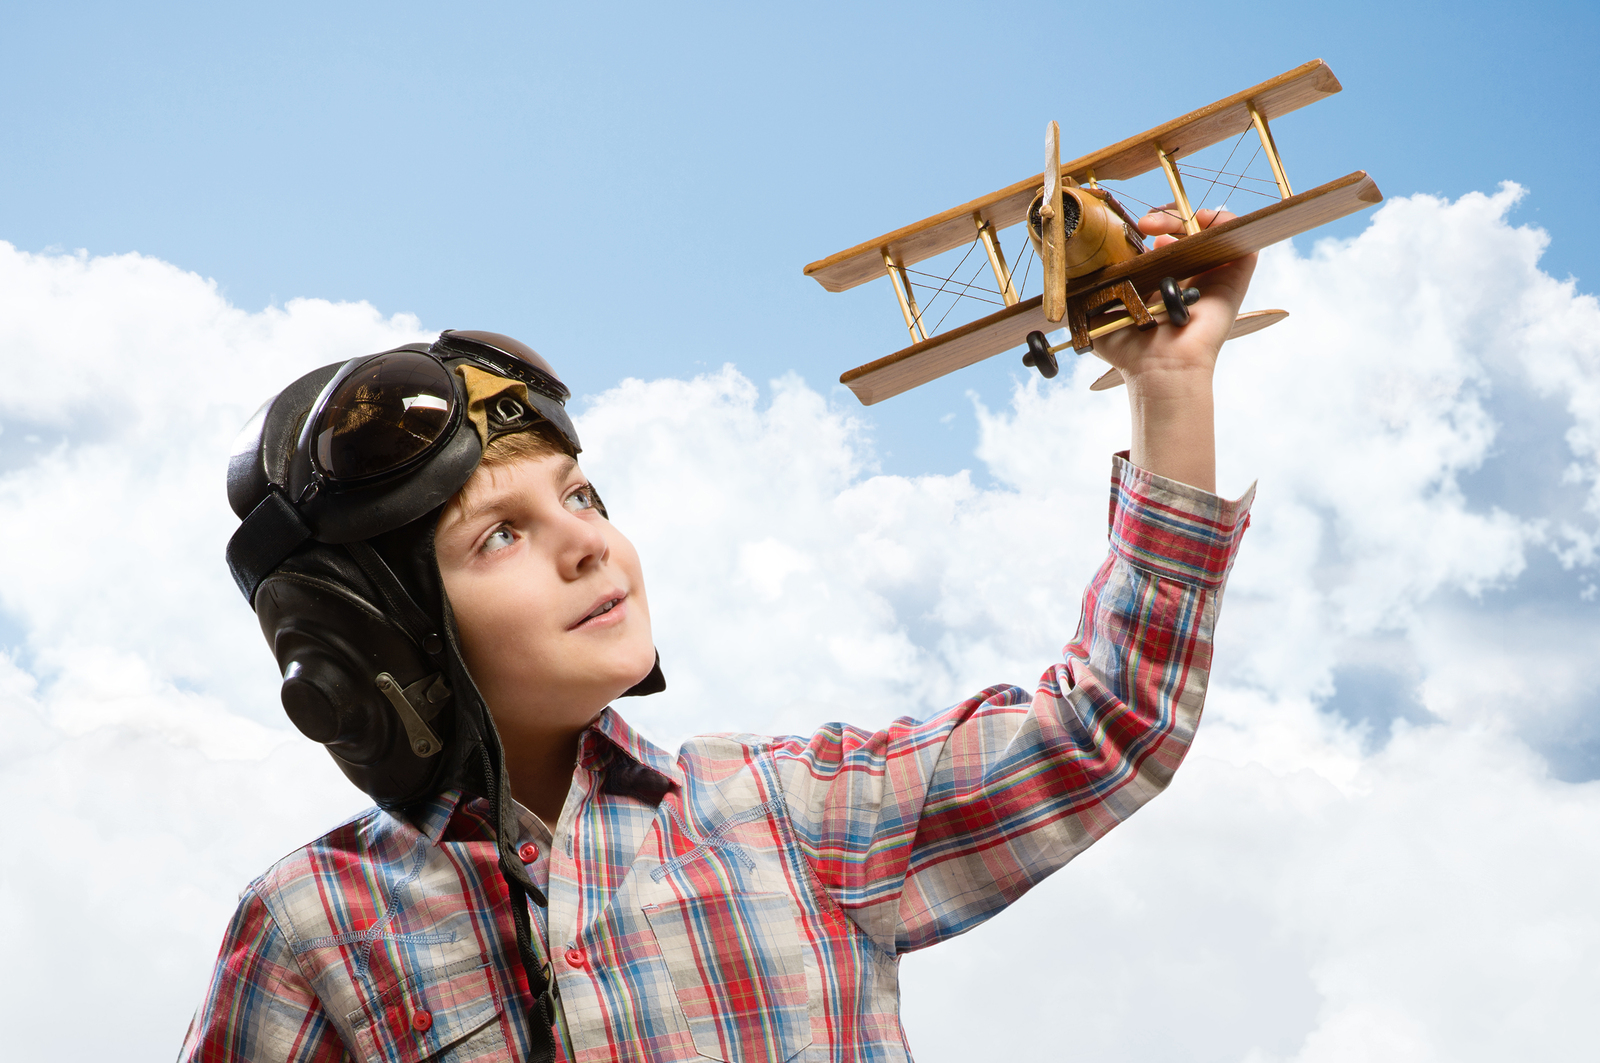 Young Boy With Pilot Helmet Playing a Plane Toy